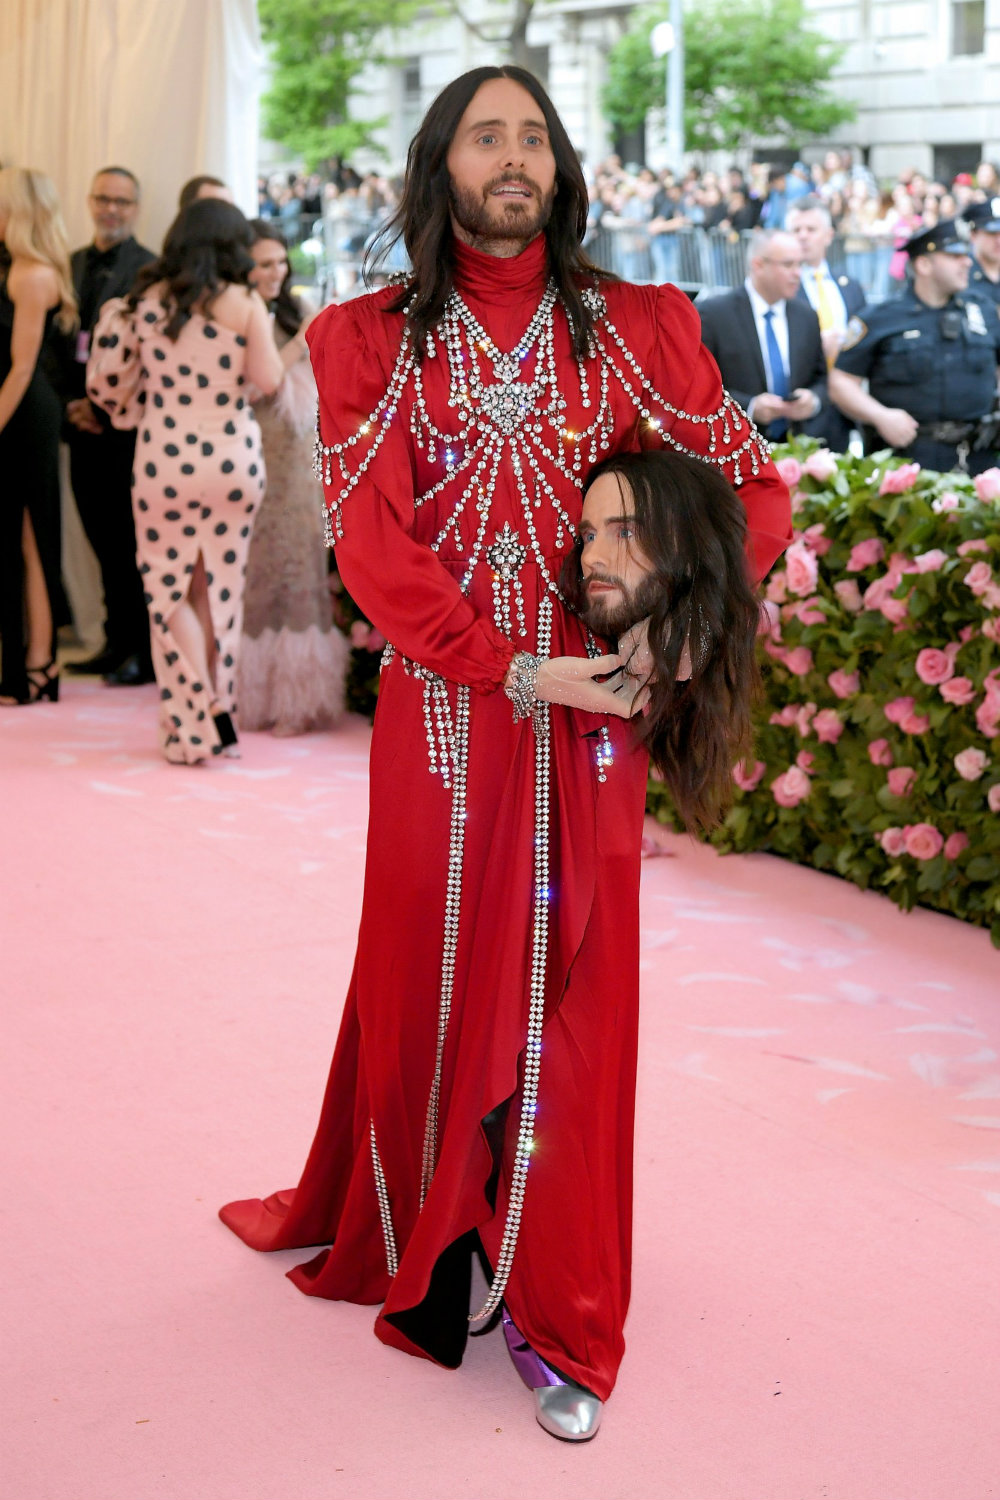 Met Gala 2019 Red Carpet - The Best Dressed 05 met gala 2019 red carpet Met Gala 2019 Red Carpet – The Best Dressed Met Gala 2019 Red Carpet The Best Dressed 05